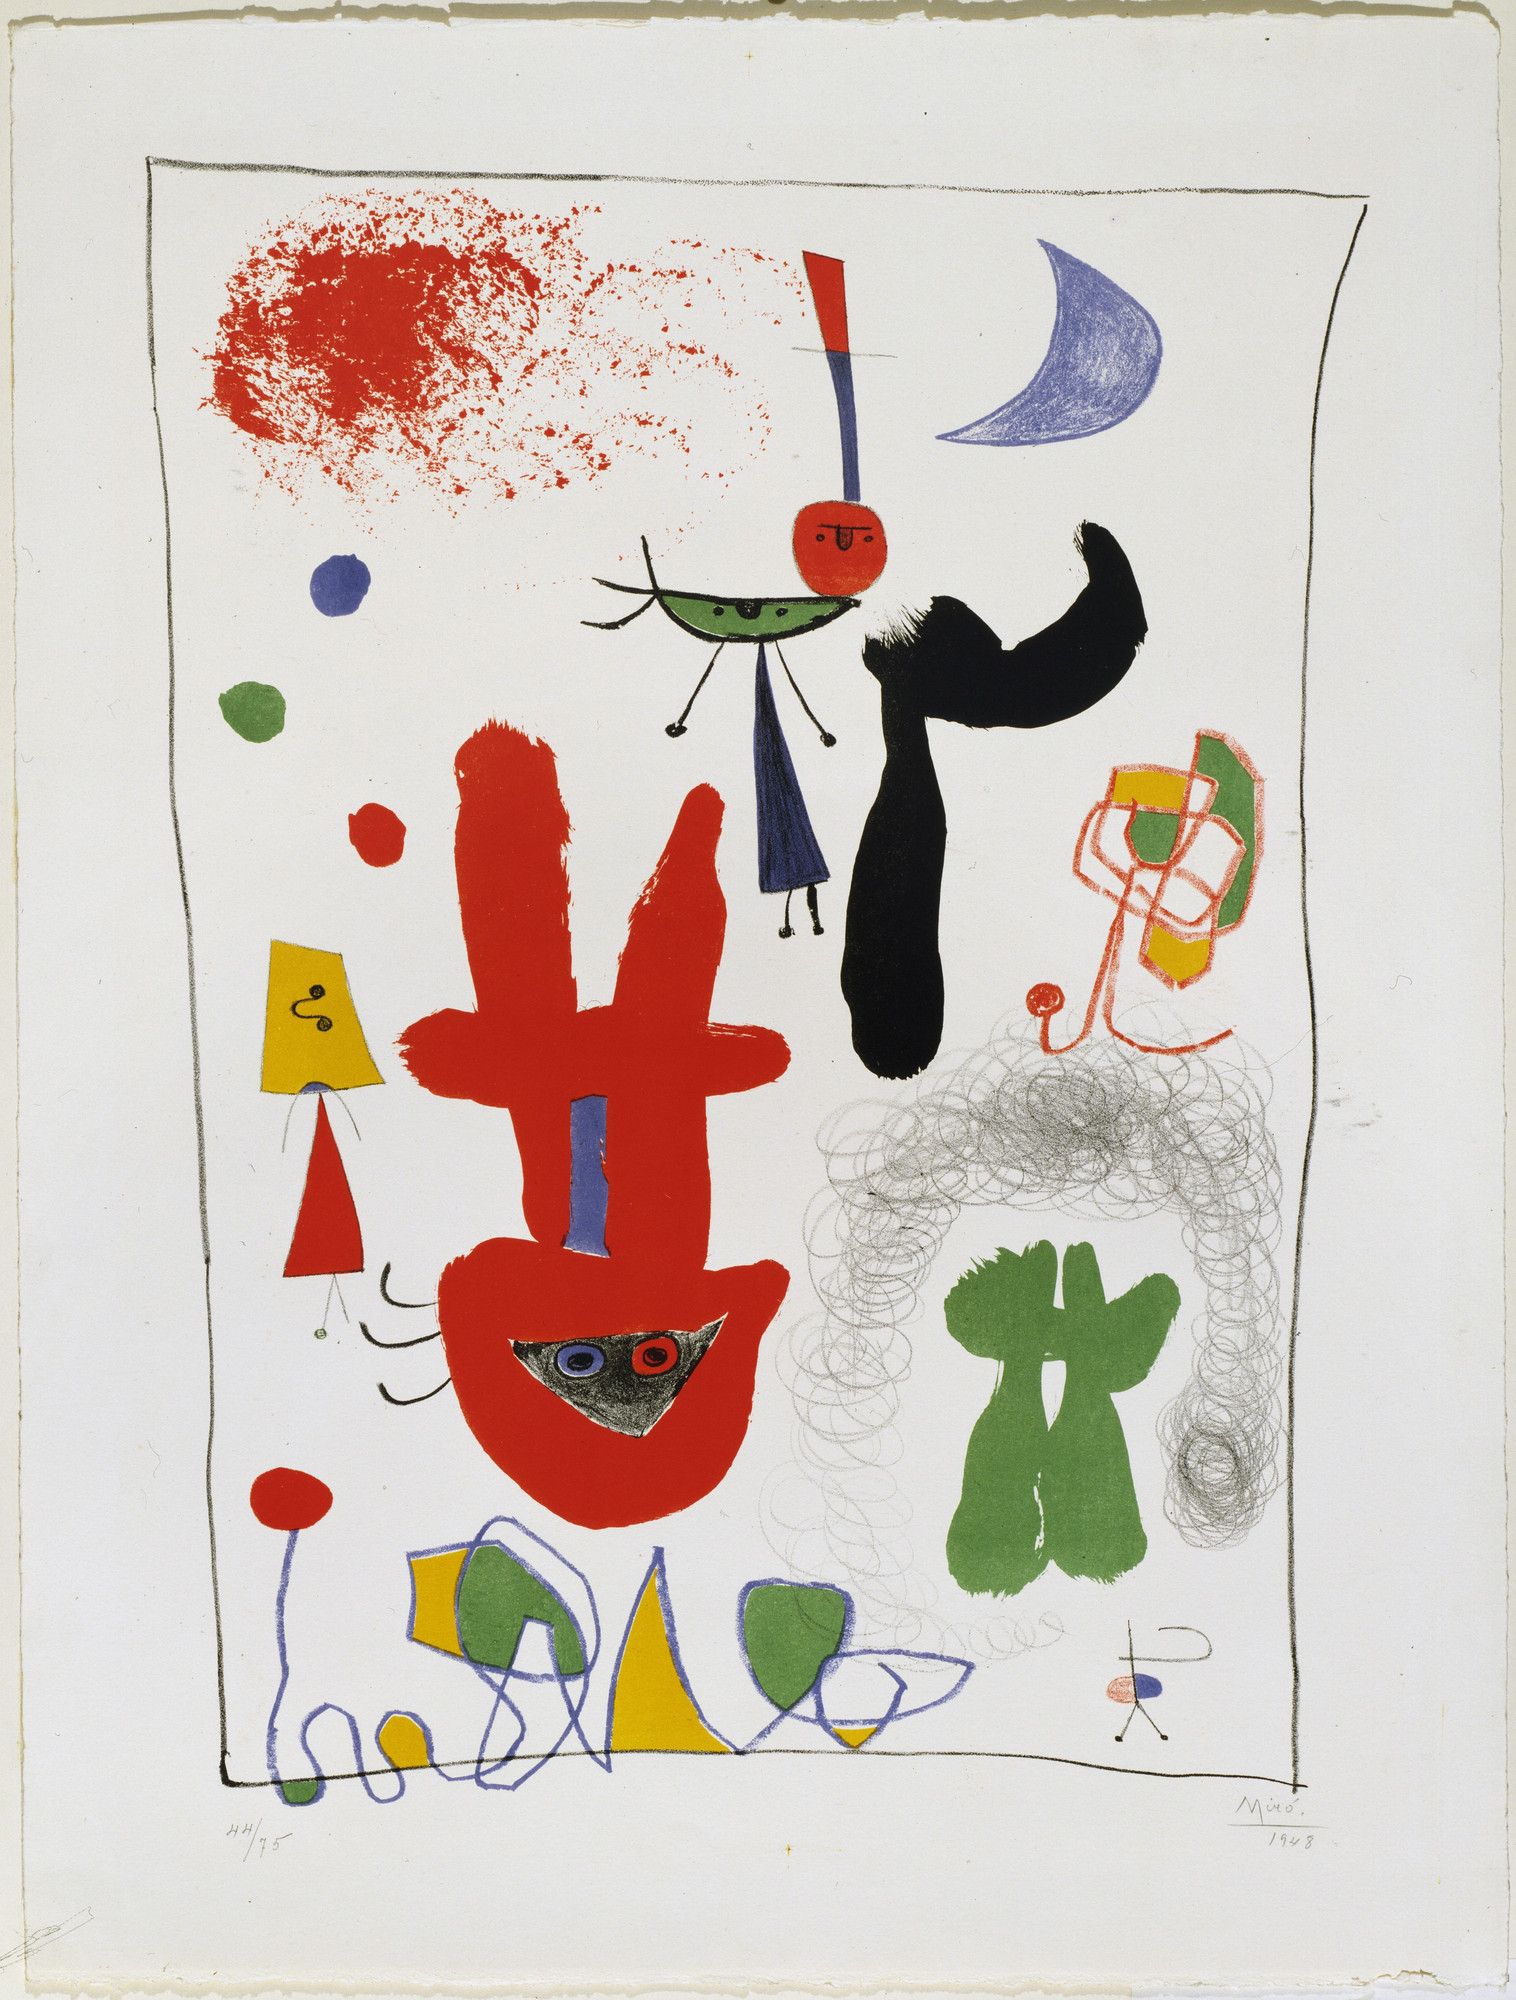 Joan Miró. Acrobats in the Night Garden. 1948